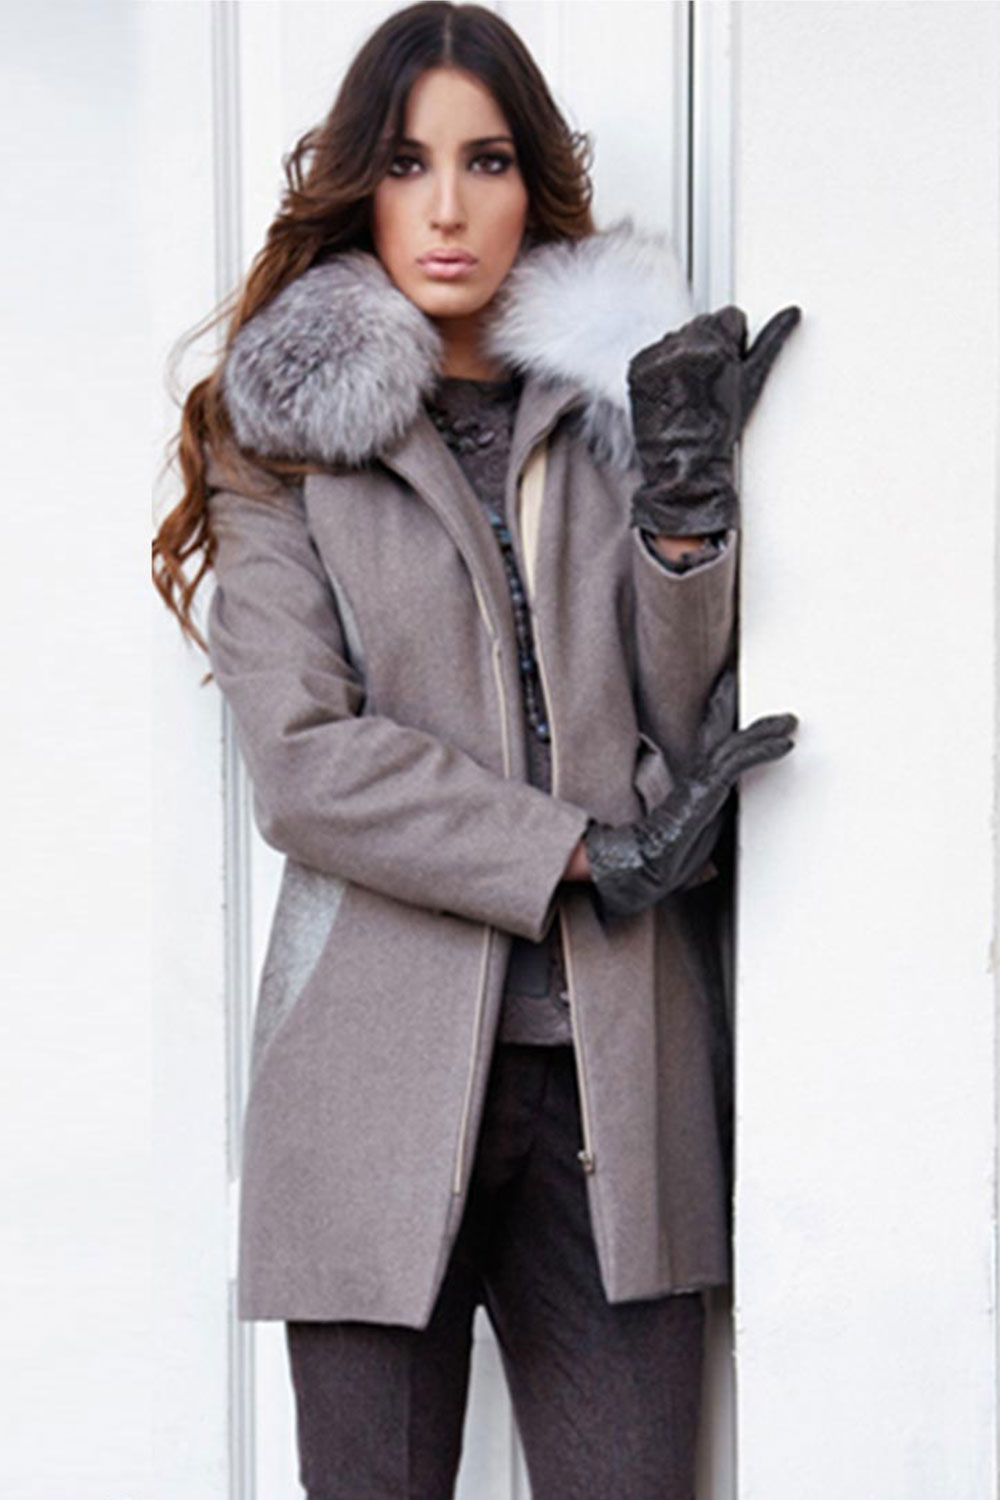 Shop our extensive line of women's faux fur coats and jackets made available in everything from hooded and full-length coats to mink and leopard printed. Women's Faux Fur Coats & Jackets Sort by: Show #: Quick Look. Ultra Violet Couture Evening Jacket. In Stock! If you're so not ready for Winter, this coat is a great place to start.